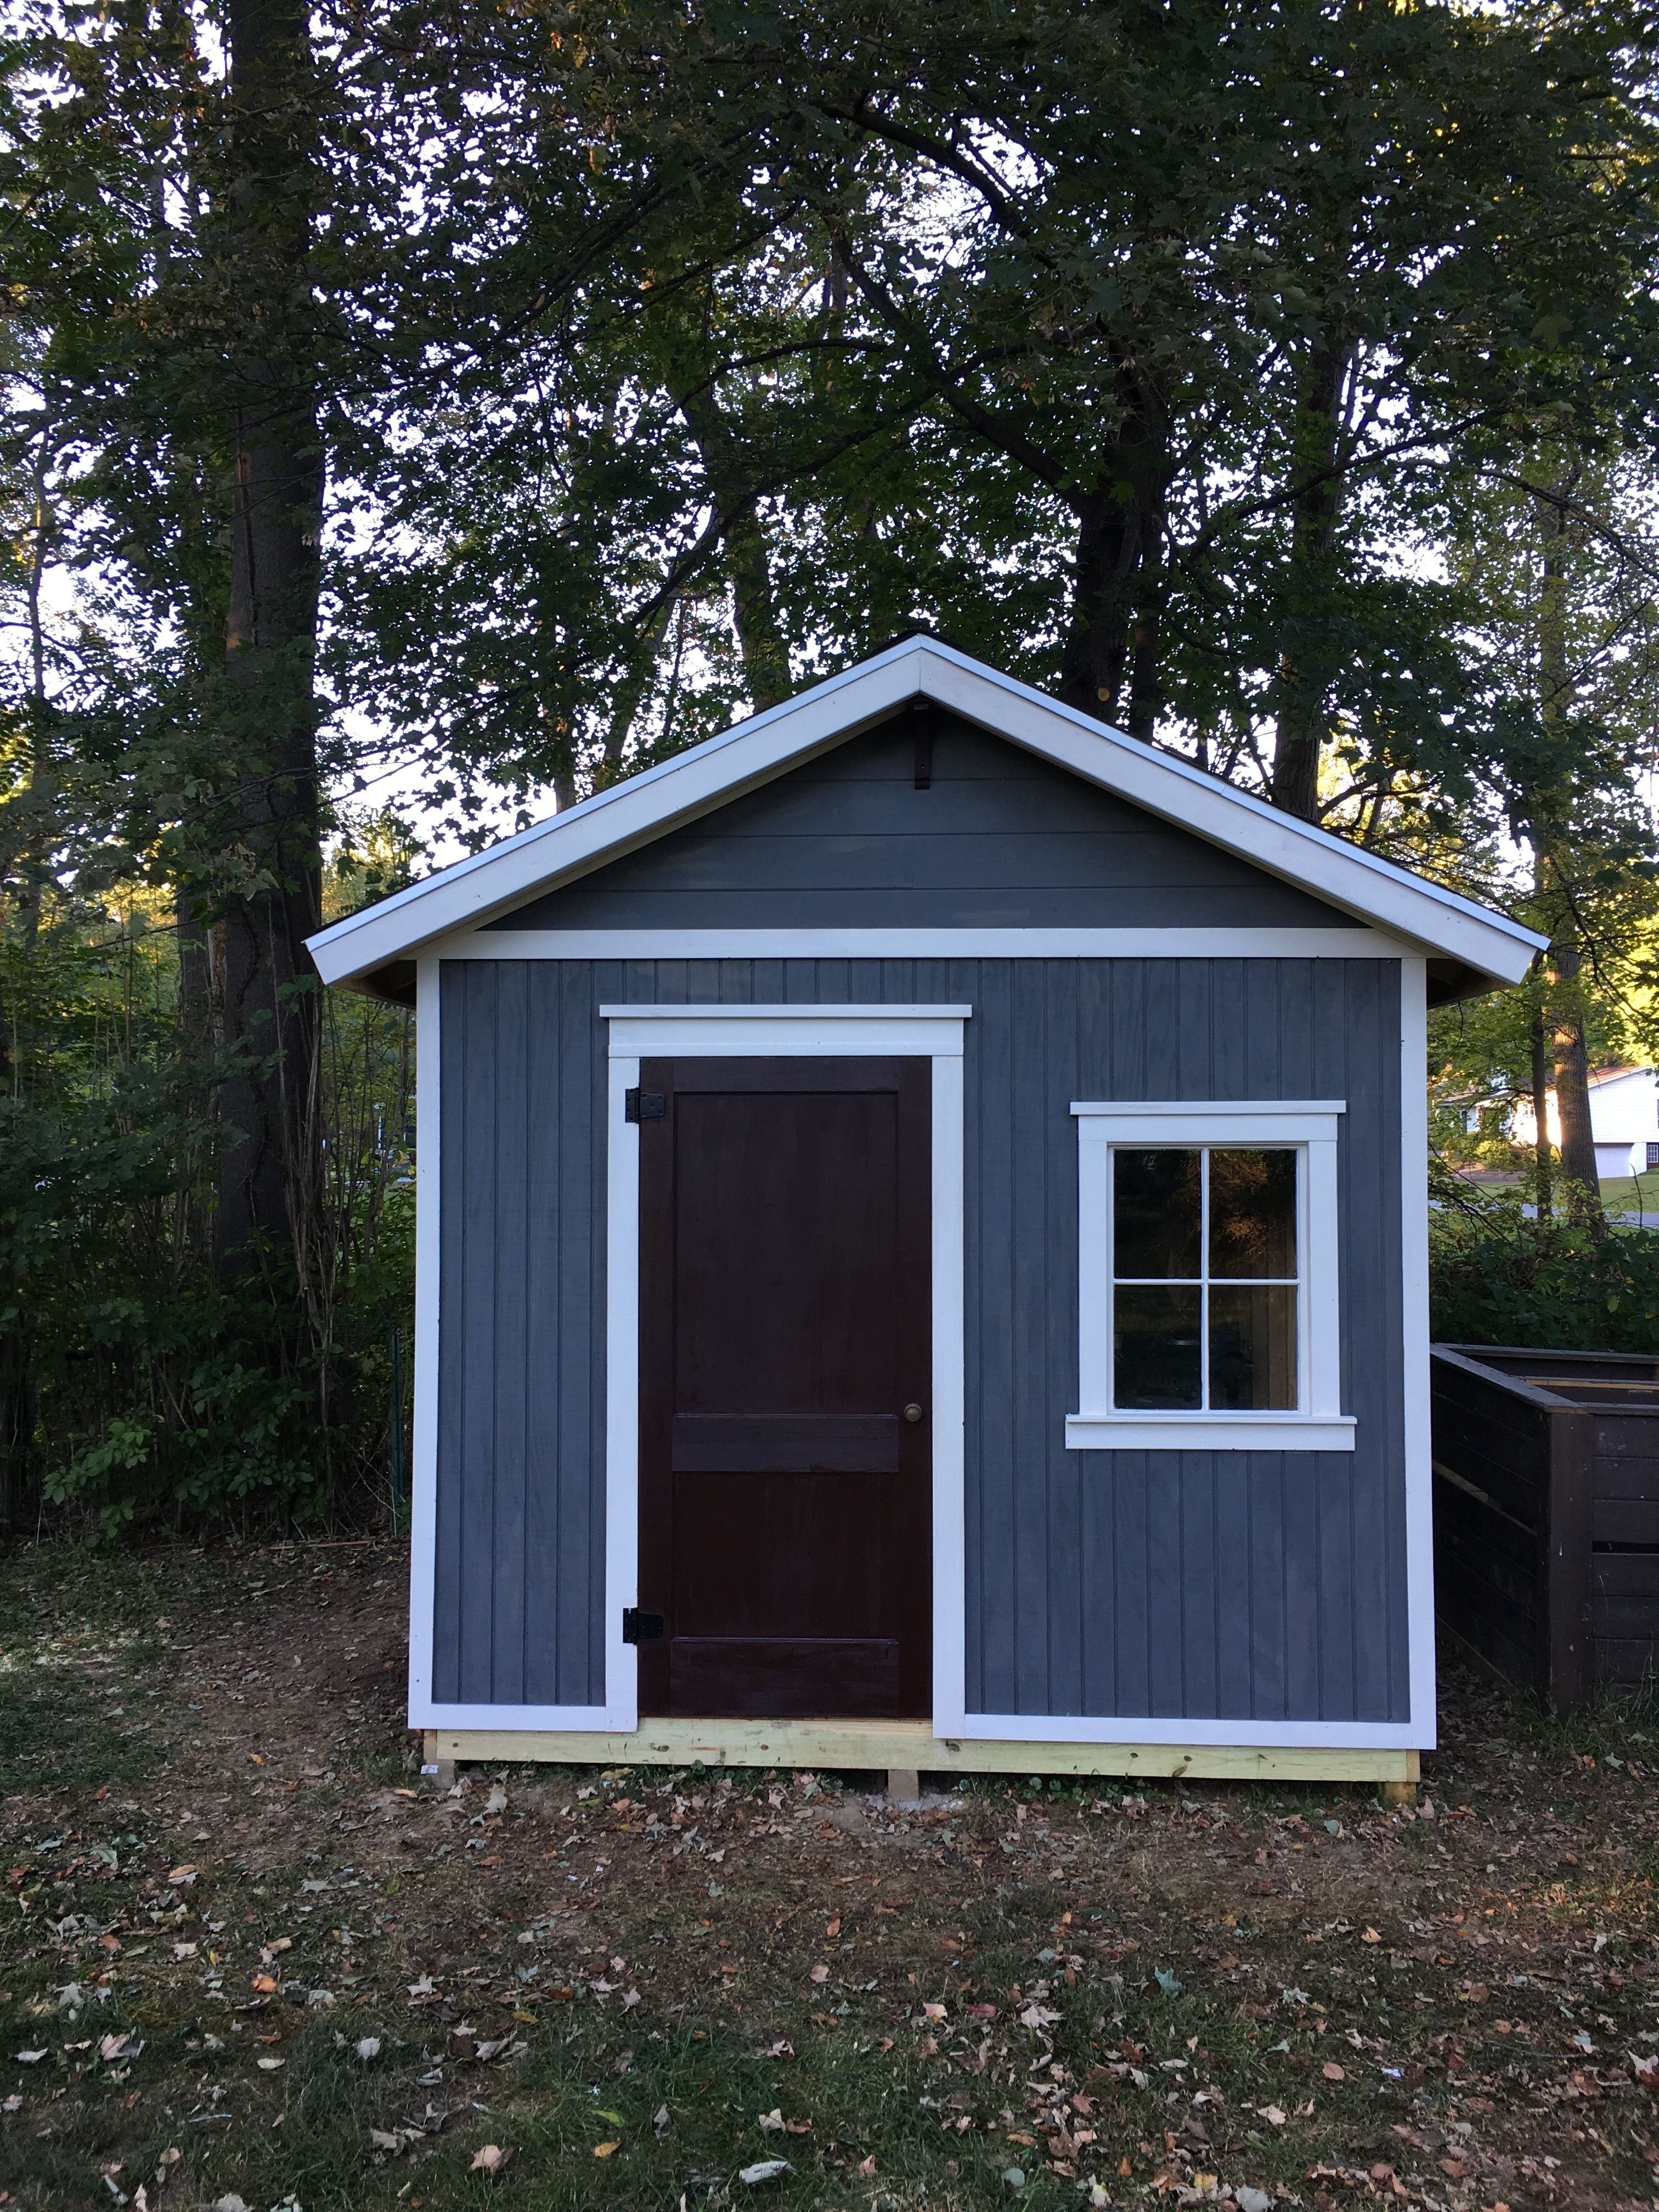 Shed Plans 10x12 Gable Shed Step By Step Construct101 Shed Plans Building A Shed Free Shed Plans